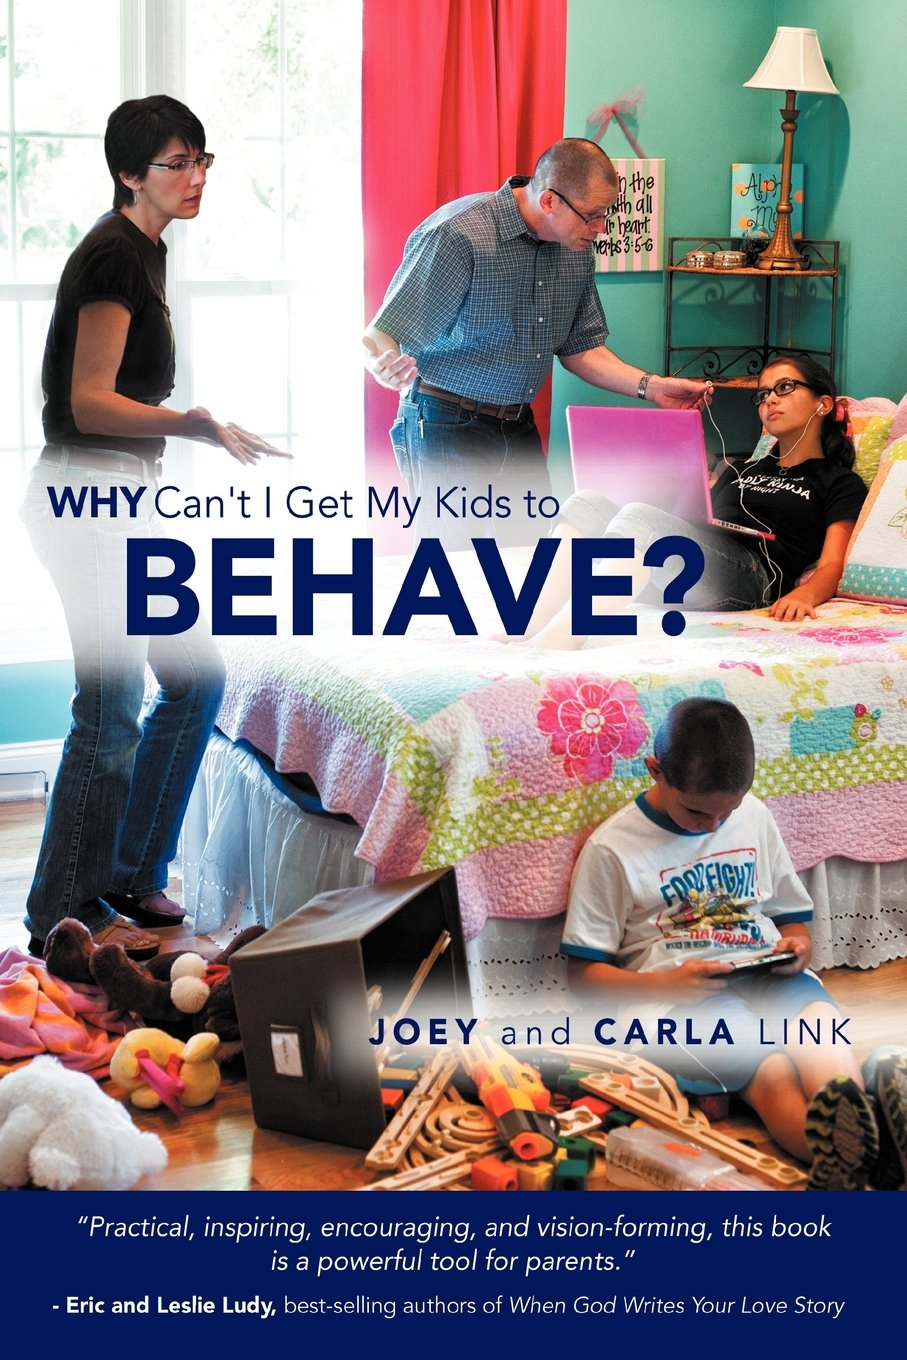 Why Can't I Get My Kids to Behave? pdf